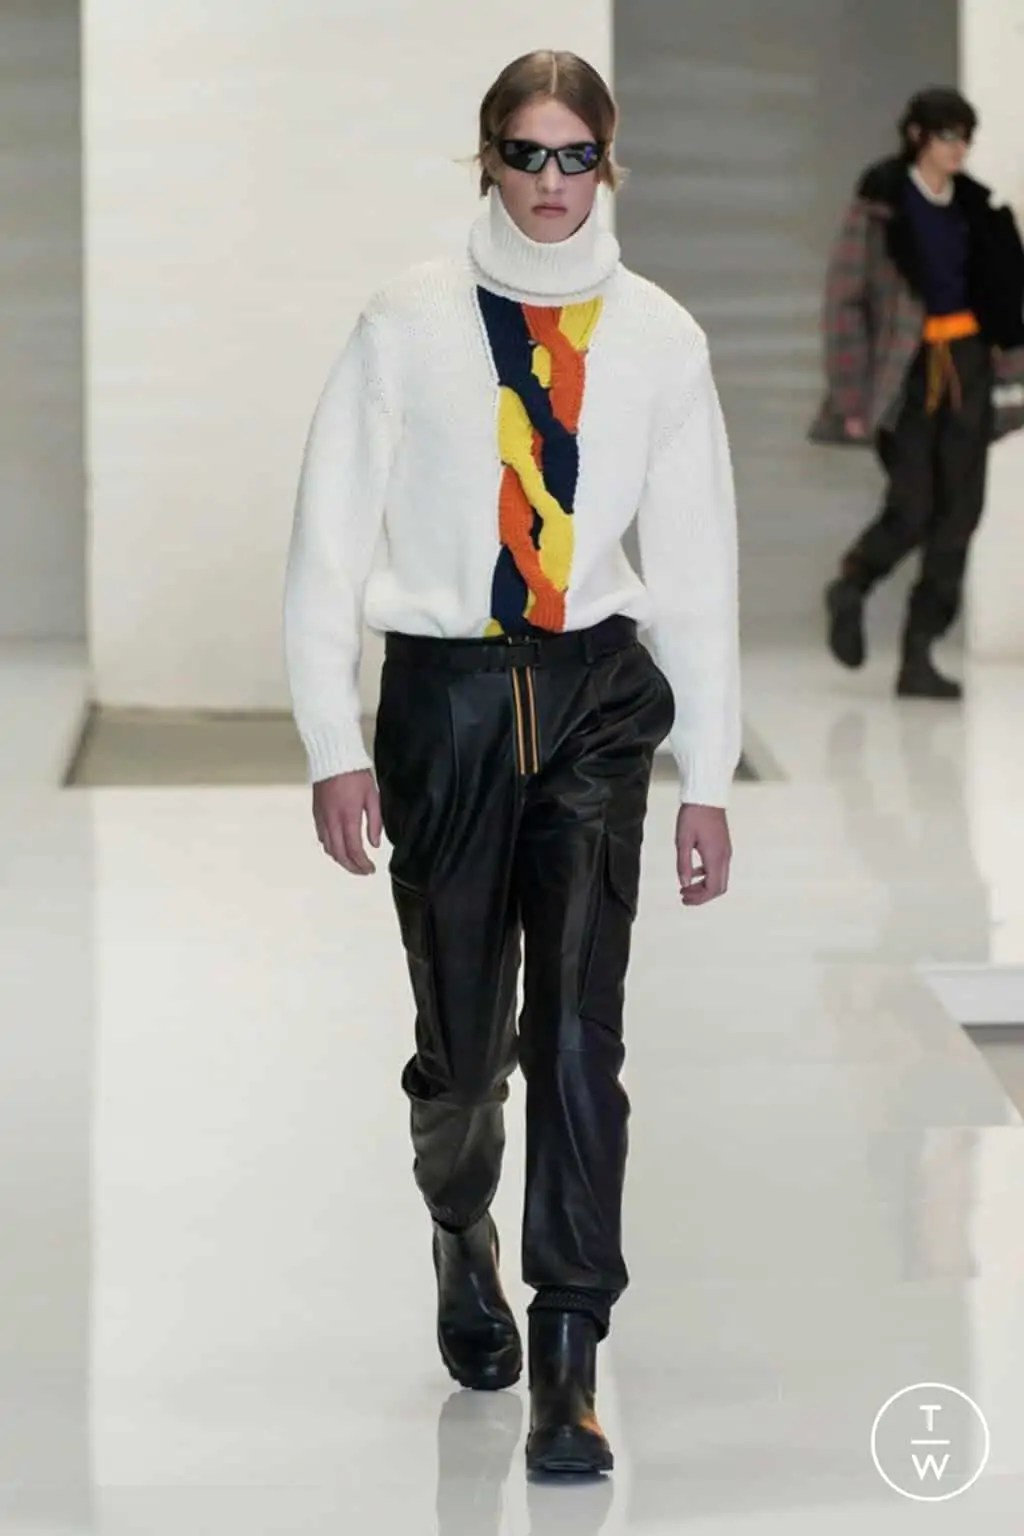 15 FALL/WINTER TRENDS FOR MEN IN 2021 586